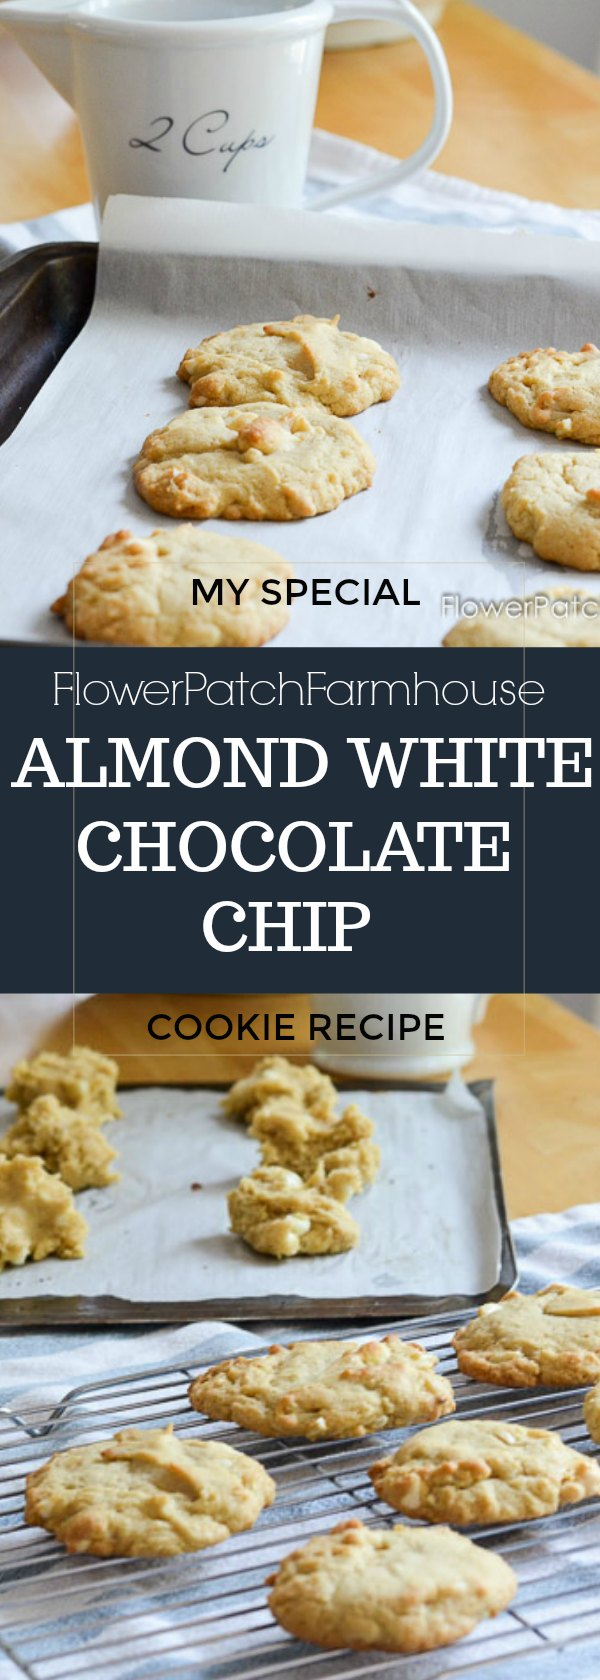 Almond White Chocolate chip cookies are delicious and easy to bake.  I add a special ingredient to enhance all the flavors and make them ultra delicious.